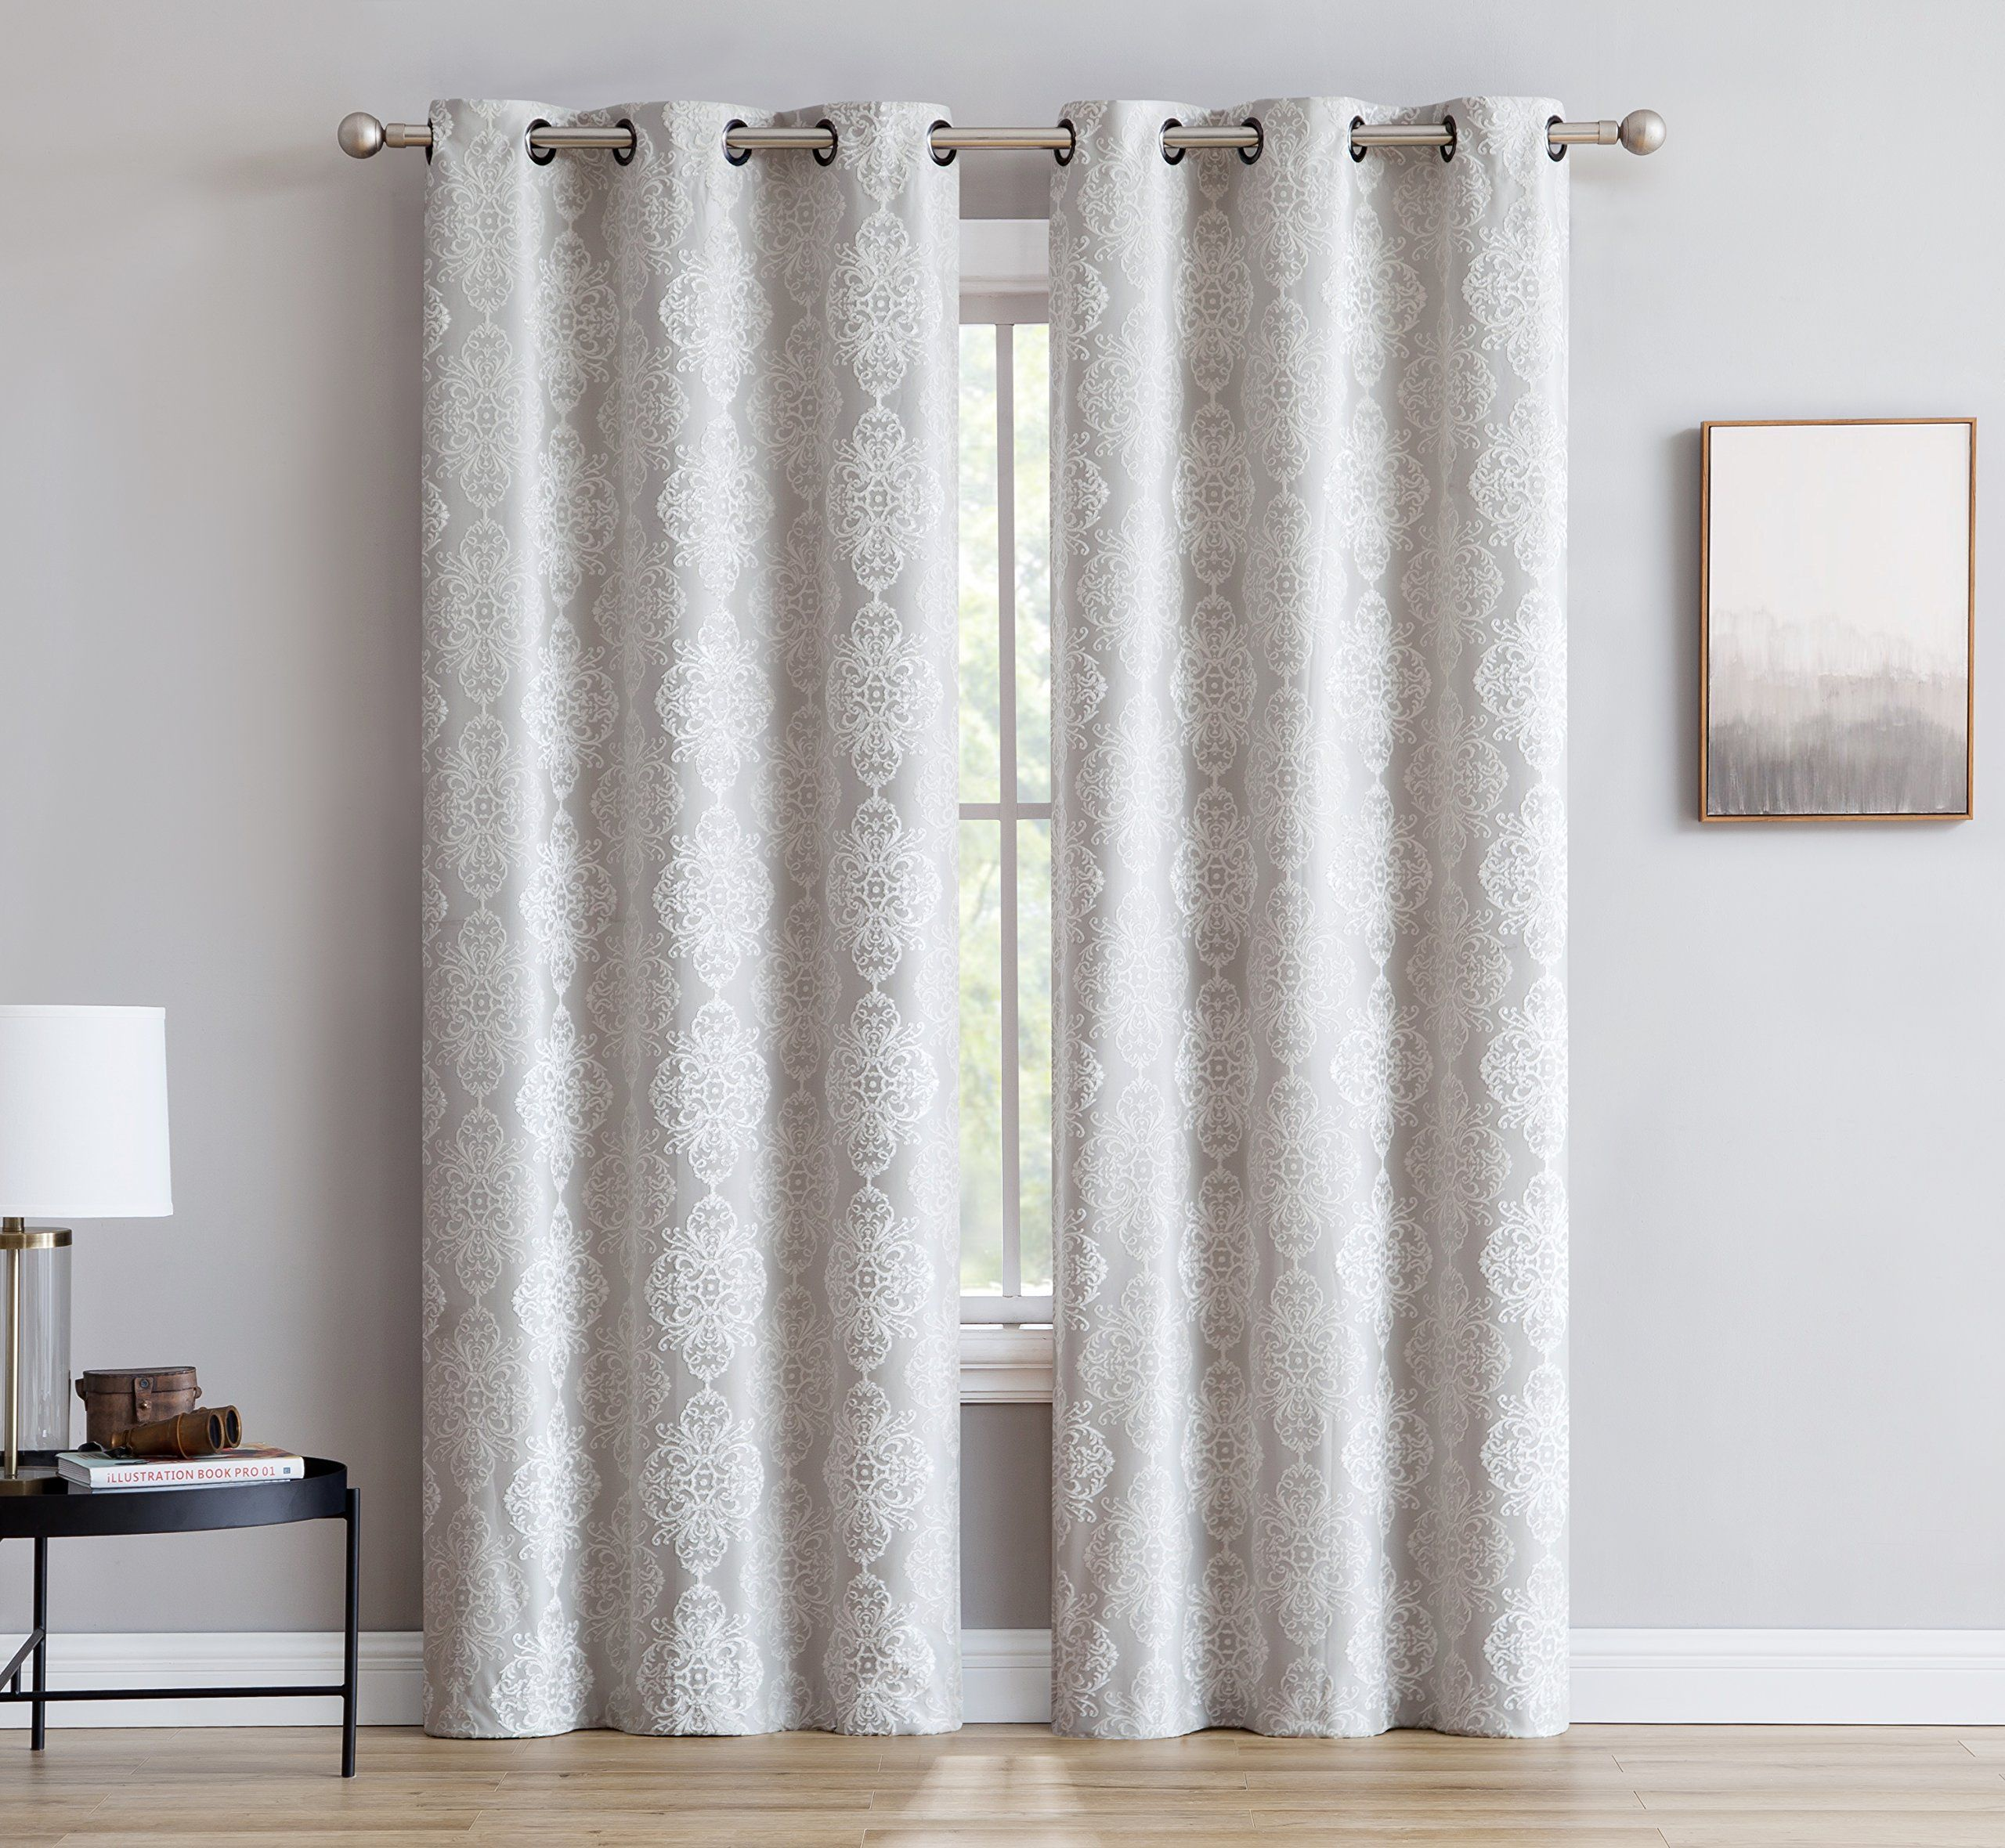 bbde kmart jc valances swag thermal trendy style curtain drapes engaging amazon red alluring kitchen walmart penneys curtains